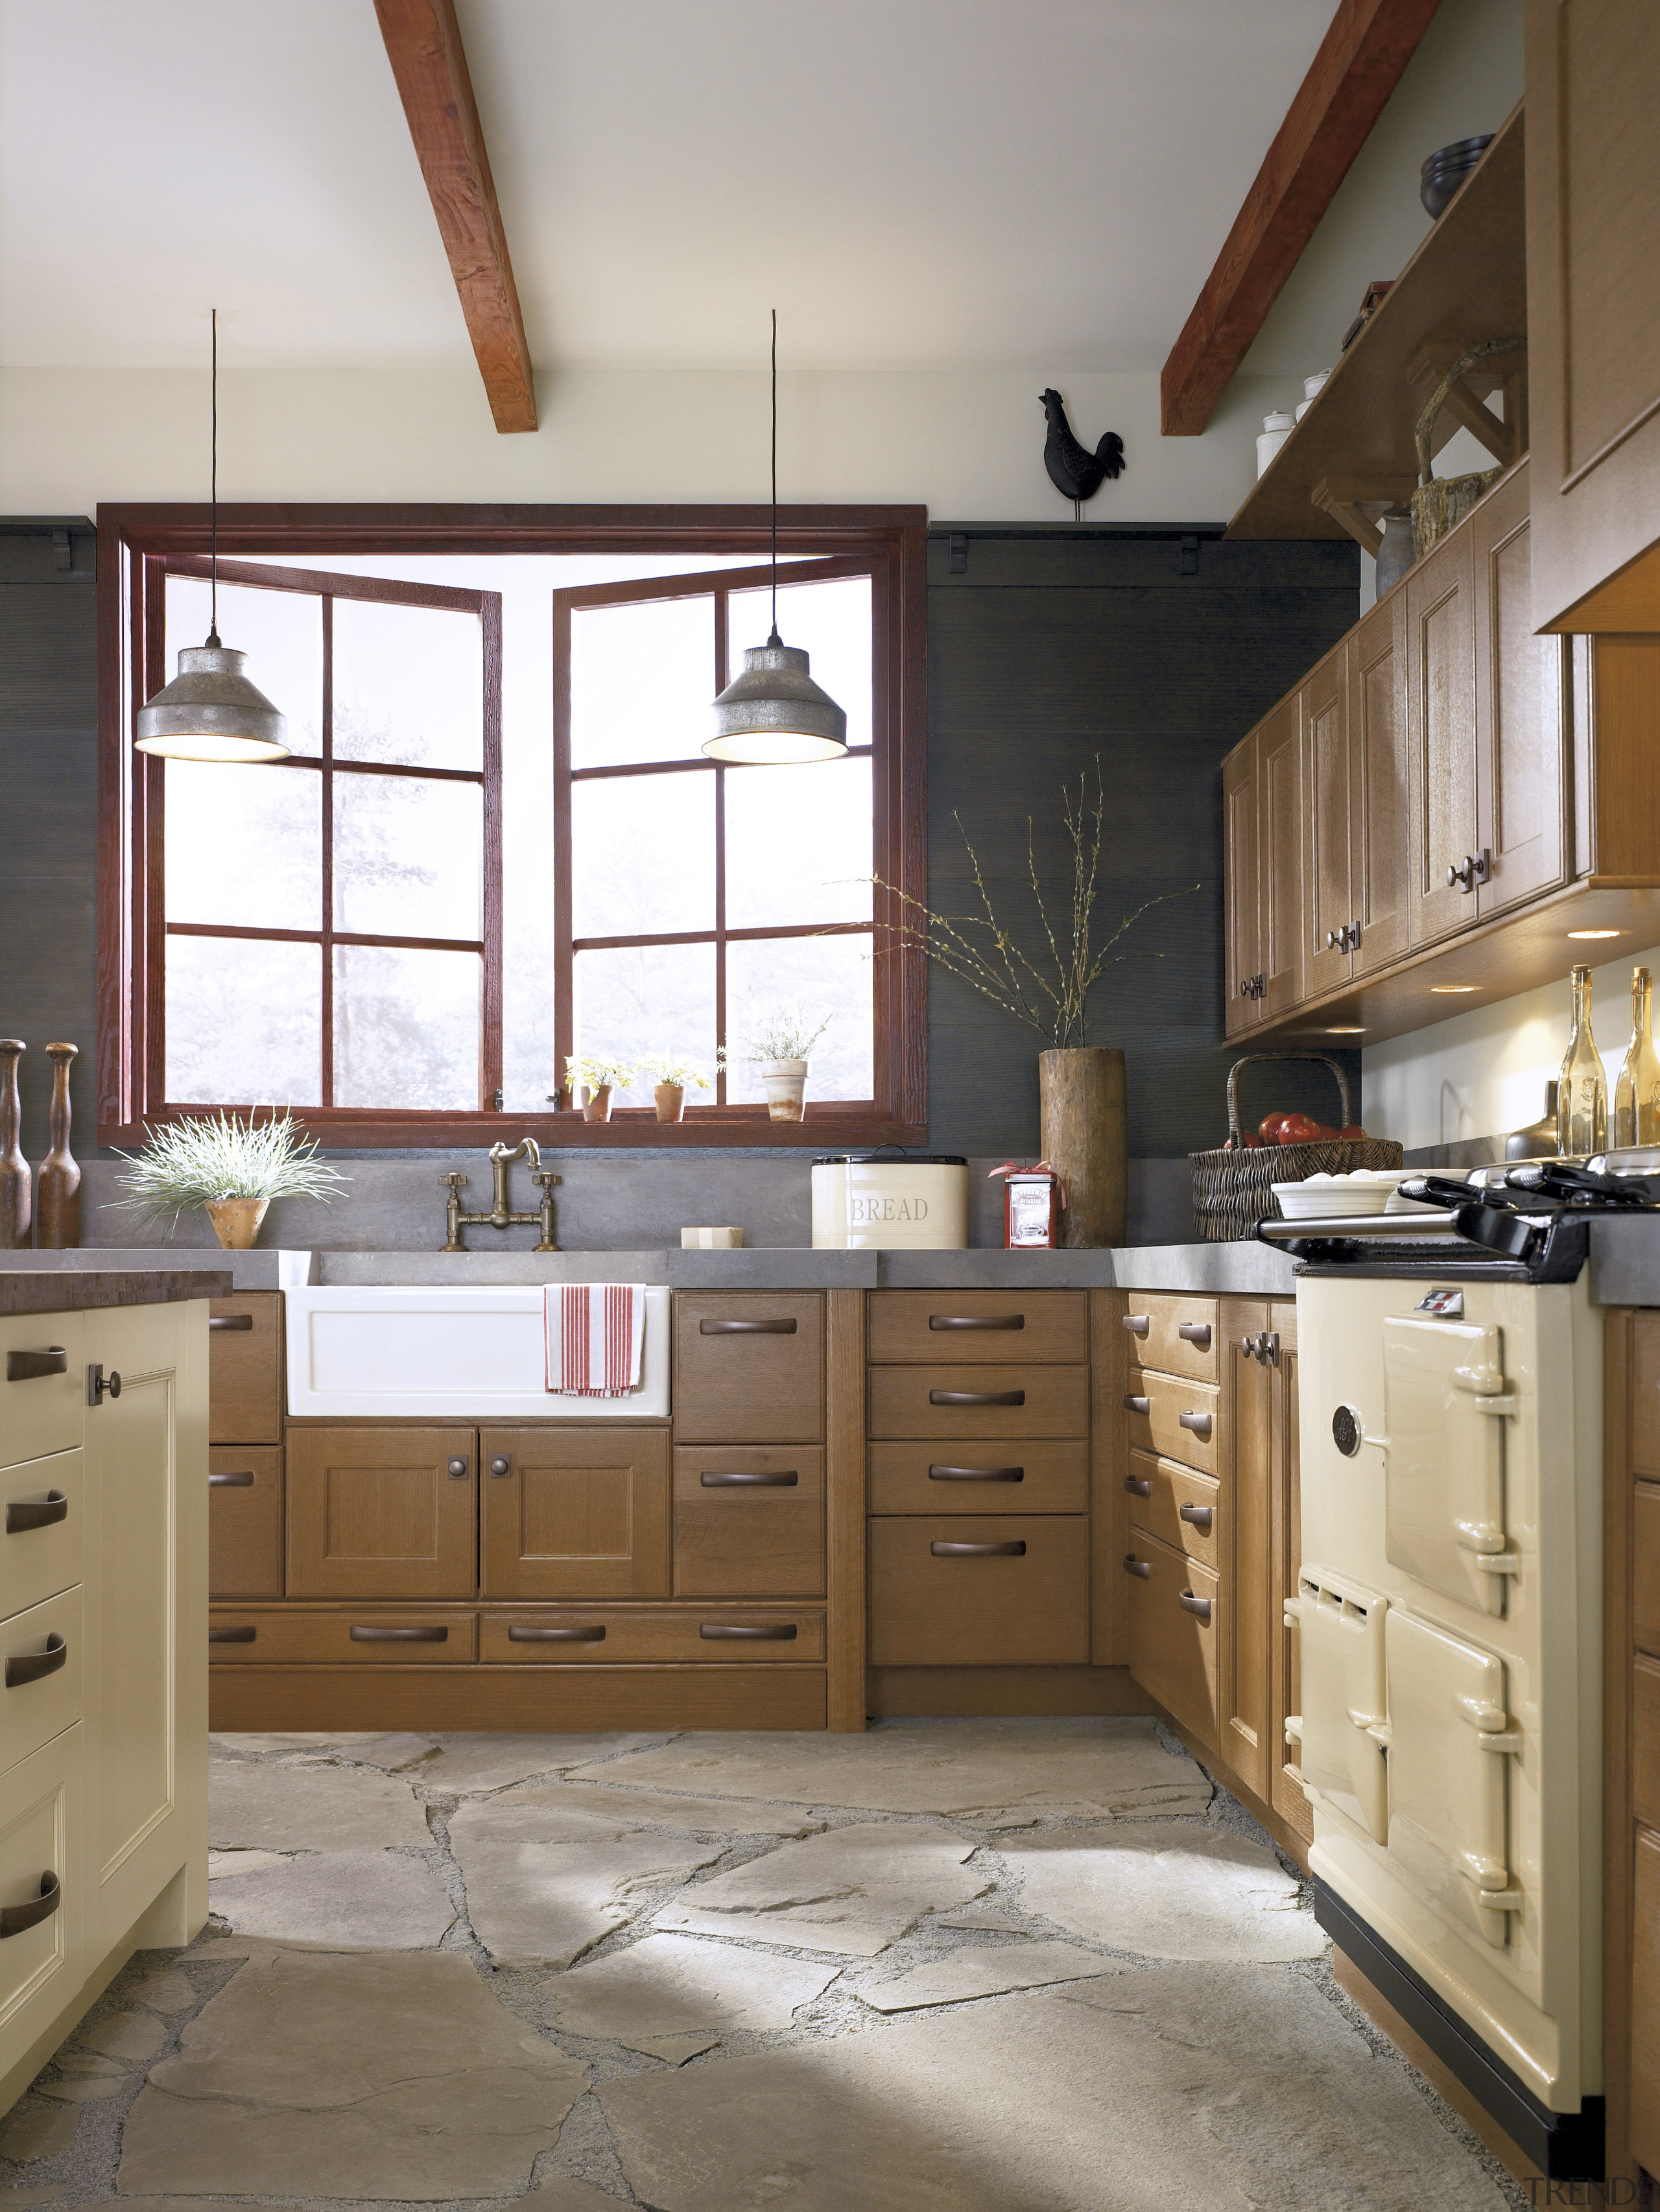 View of a kitchen which features cabinetry from cabinetry, countertop, cuisine classique, interior design, kitchen, room, gray, brown